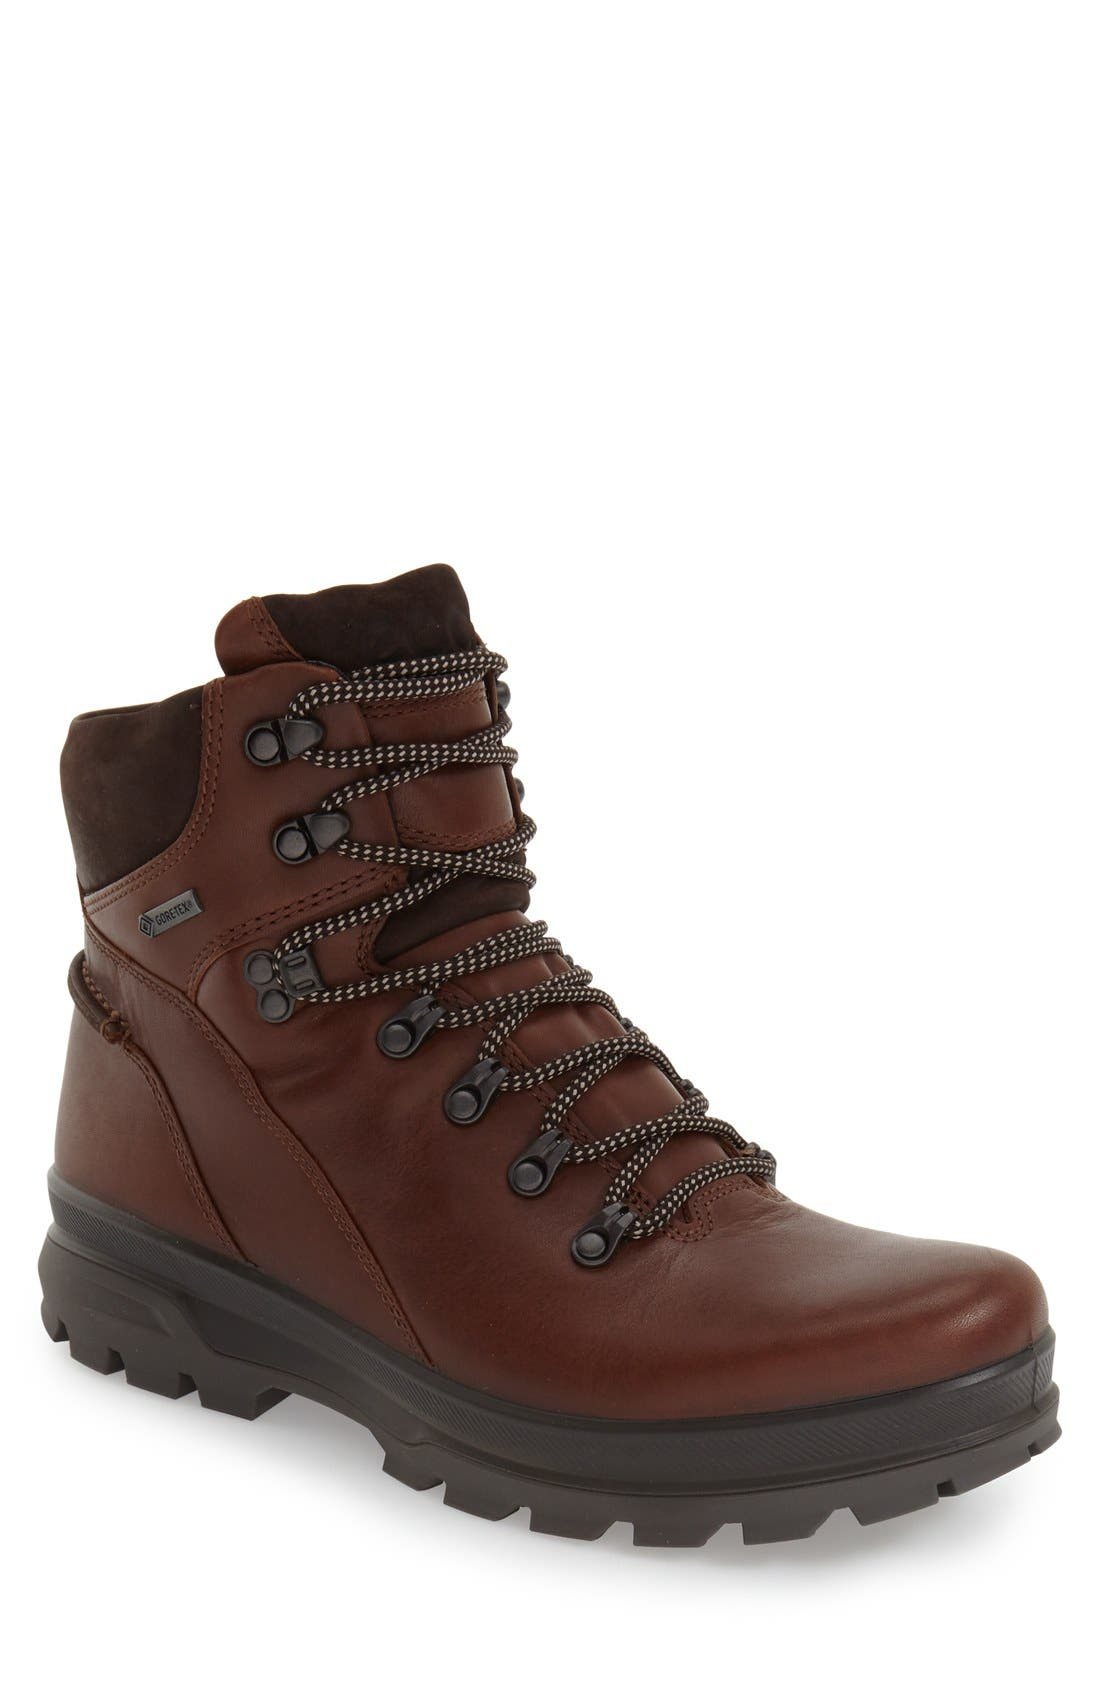 'Rugged Track GTX' Hiking Boot,                             Main thumbnail 1, color,                             BISON/ MOCHA LEATHER